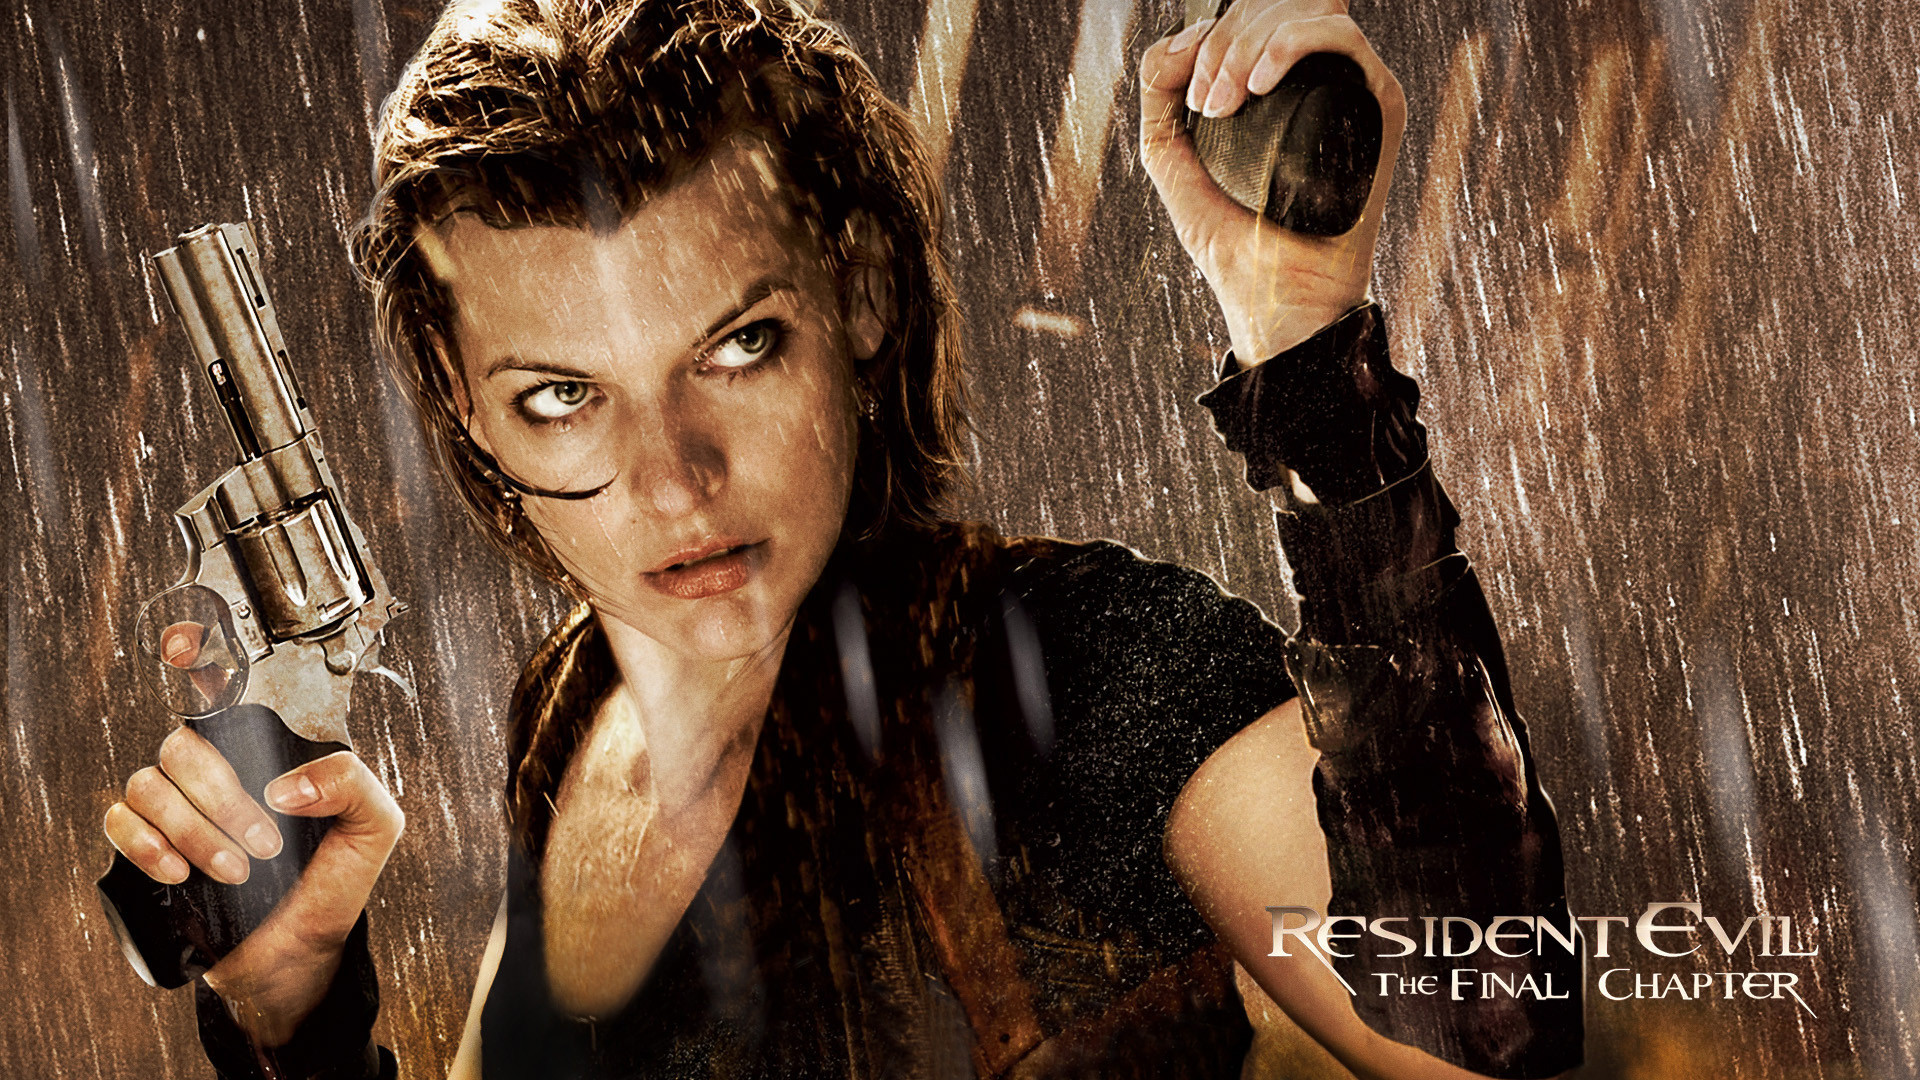 Image result for RESIDENT EVIL: THE FINAL CHAPTER hd images